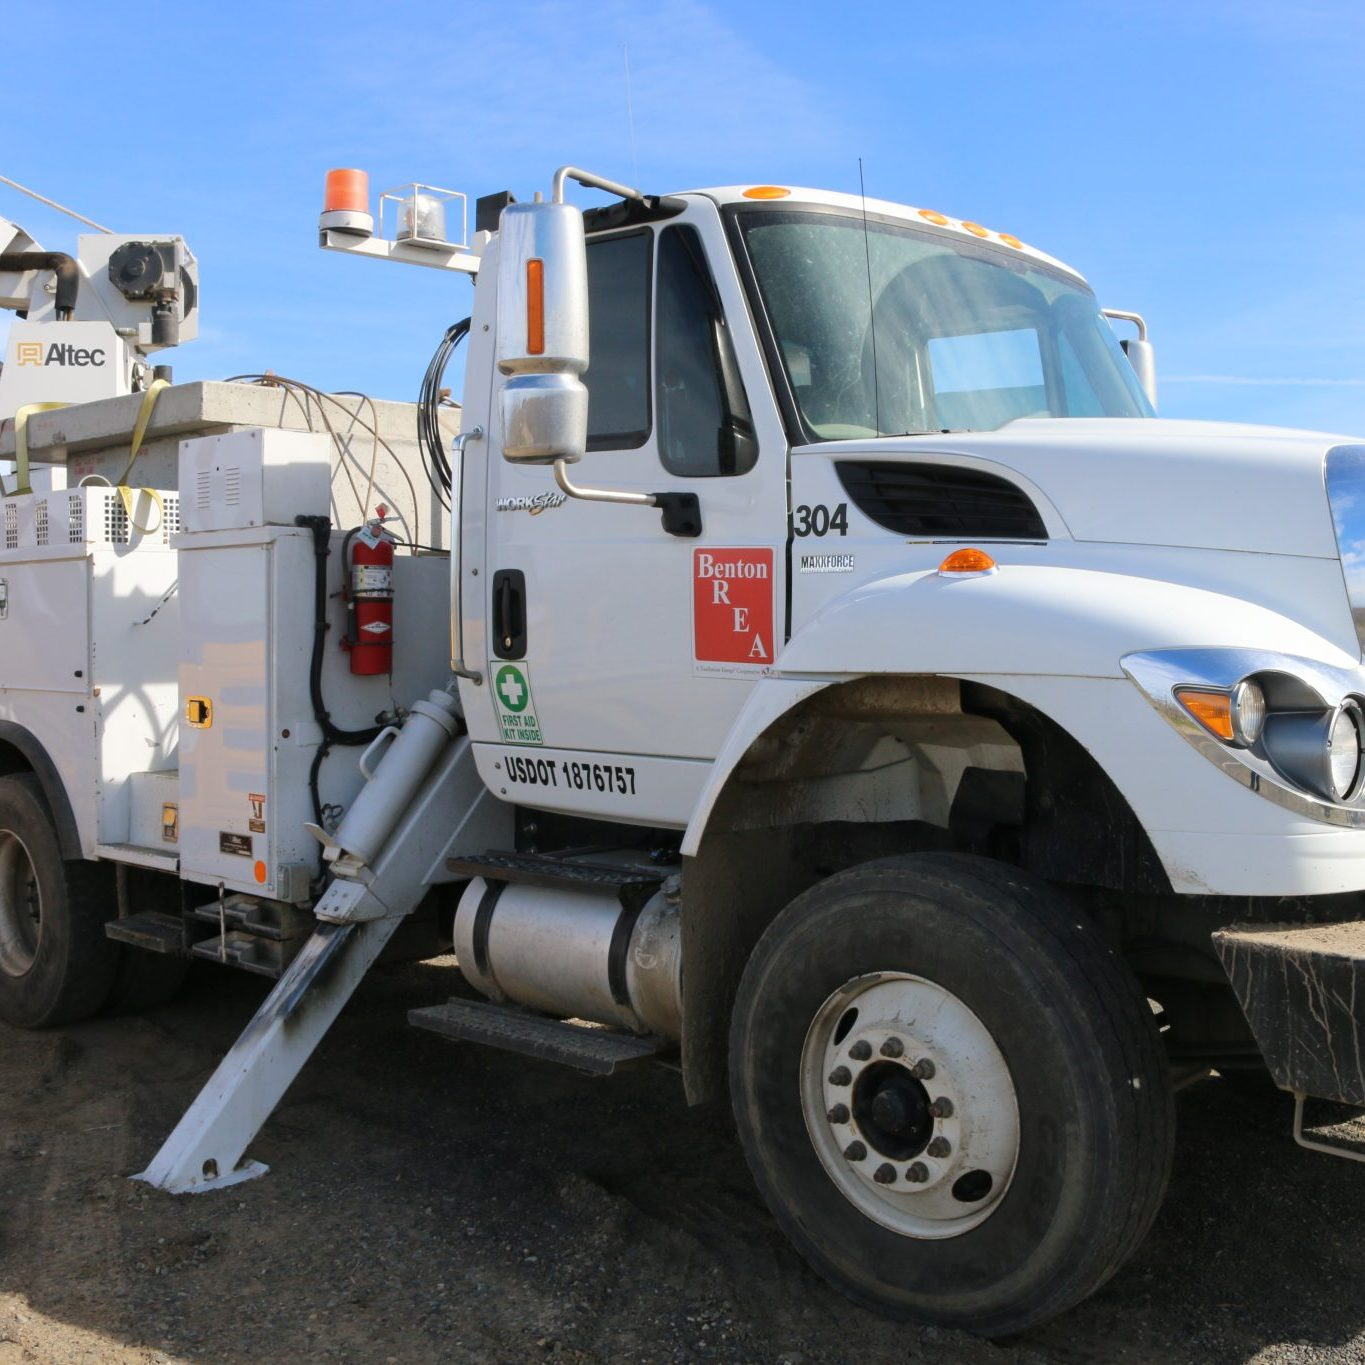 An Electrical Services Truck